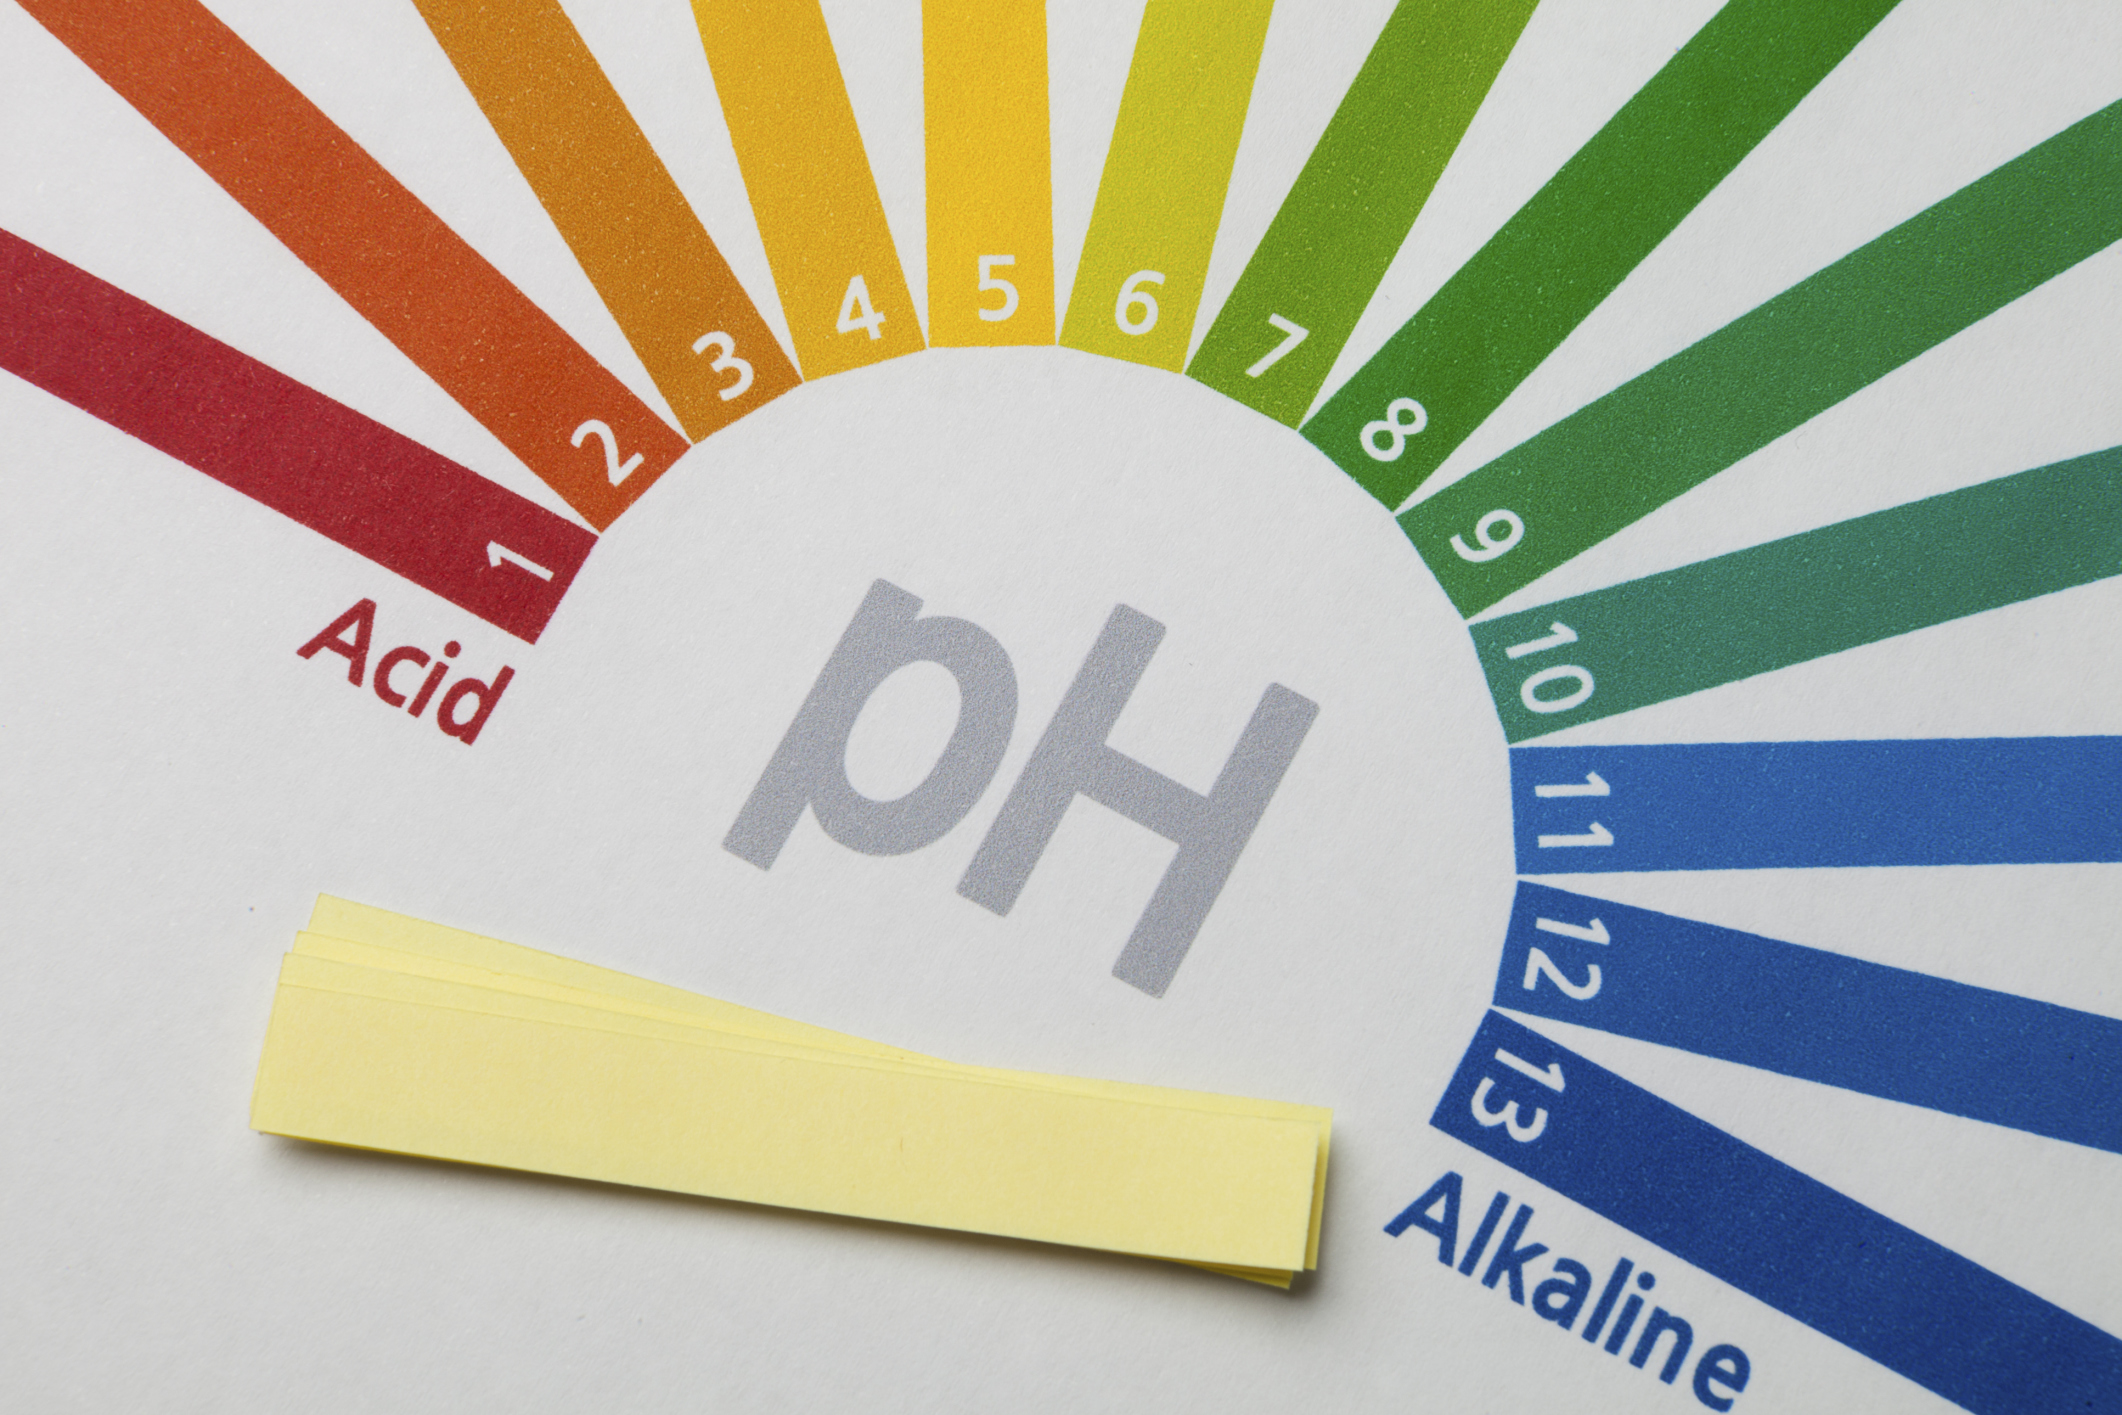 How to Maintain pH Balance in the Body